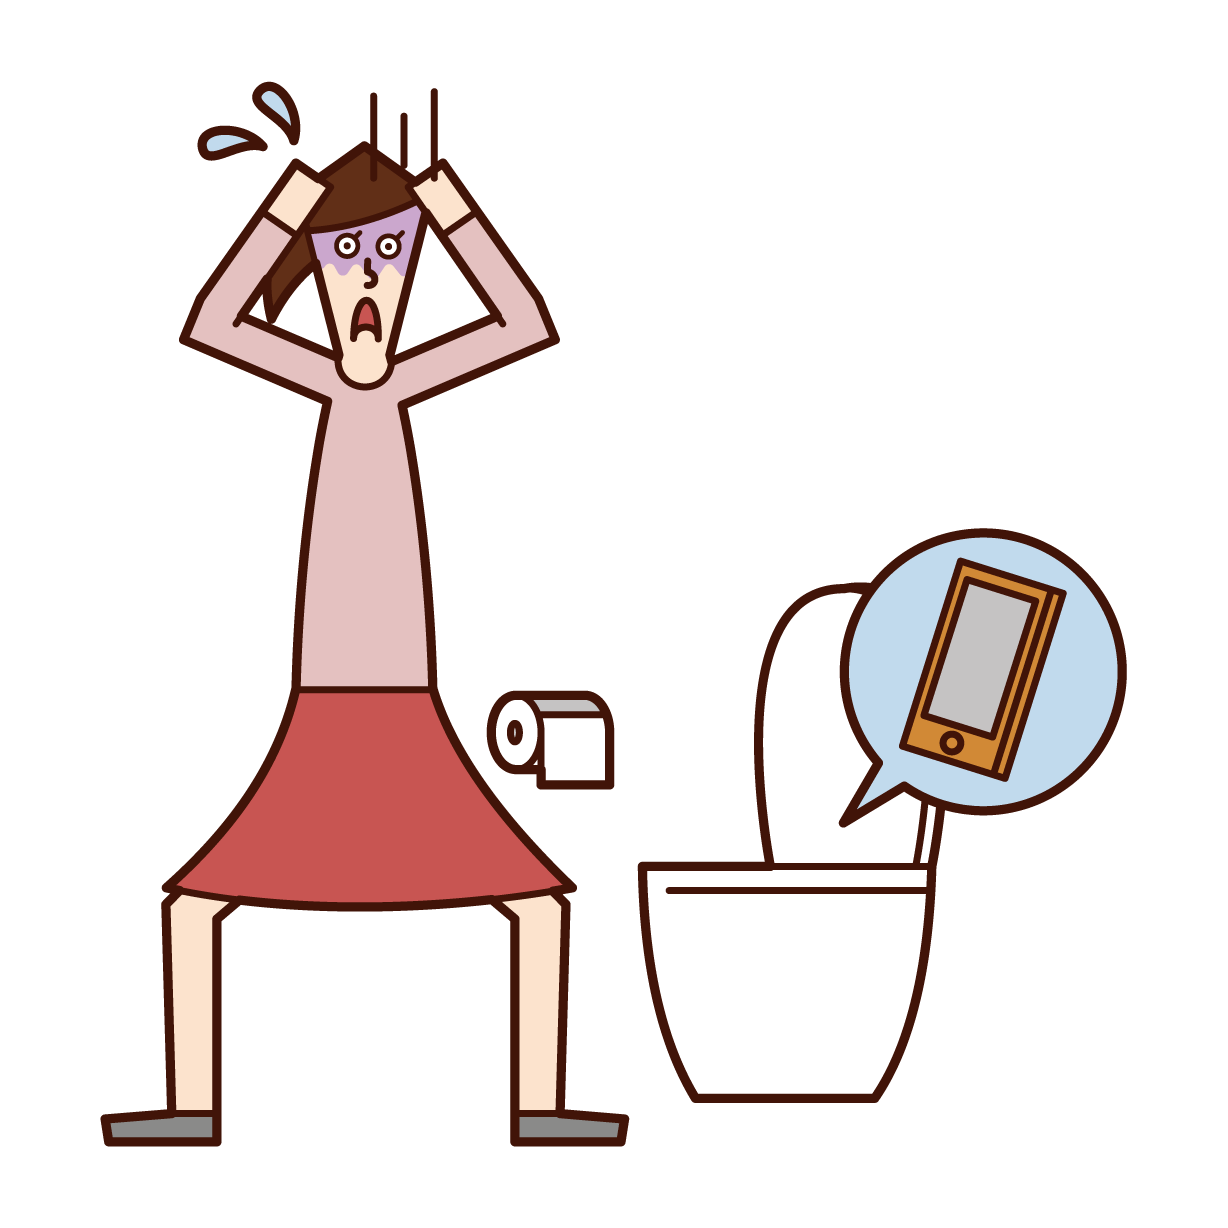 Illustration of a woman dropping her smartphone on a toilet bowl